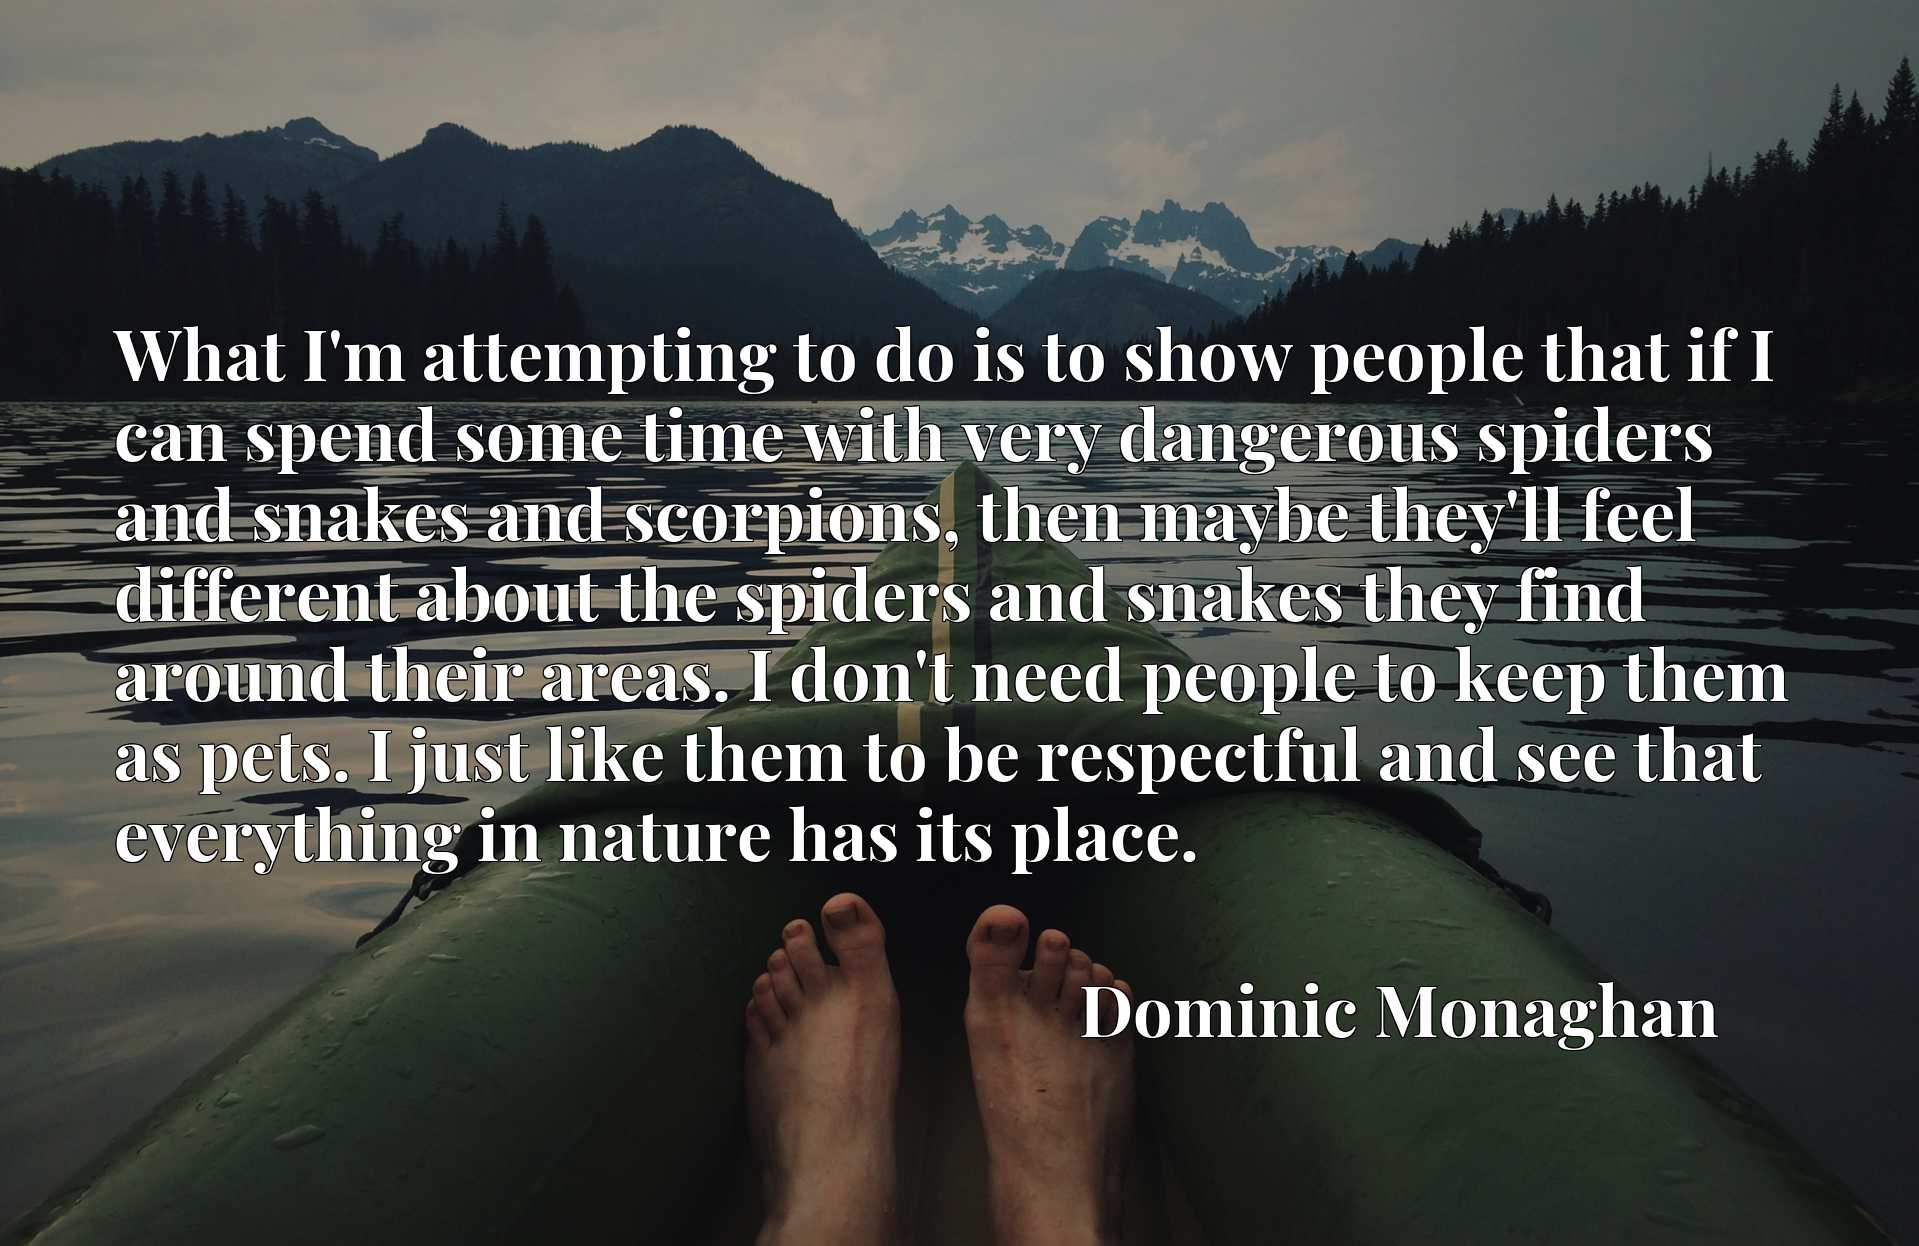 Quote Picture :What I'm attempting to do is to show people that if I can spend some time with very dangerous spiders and snakes and scorpions, then maybe they'll feel different about the spiders and snakes they find around their areas. I don't need people to keep them as pets. I just like them to be respectful and see that everything in nature has its place.